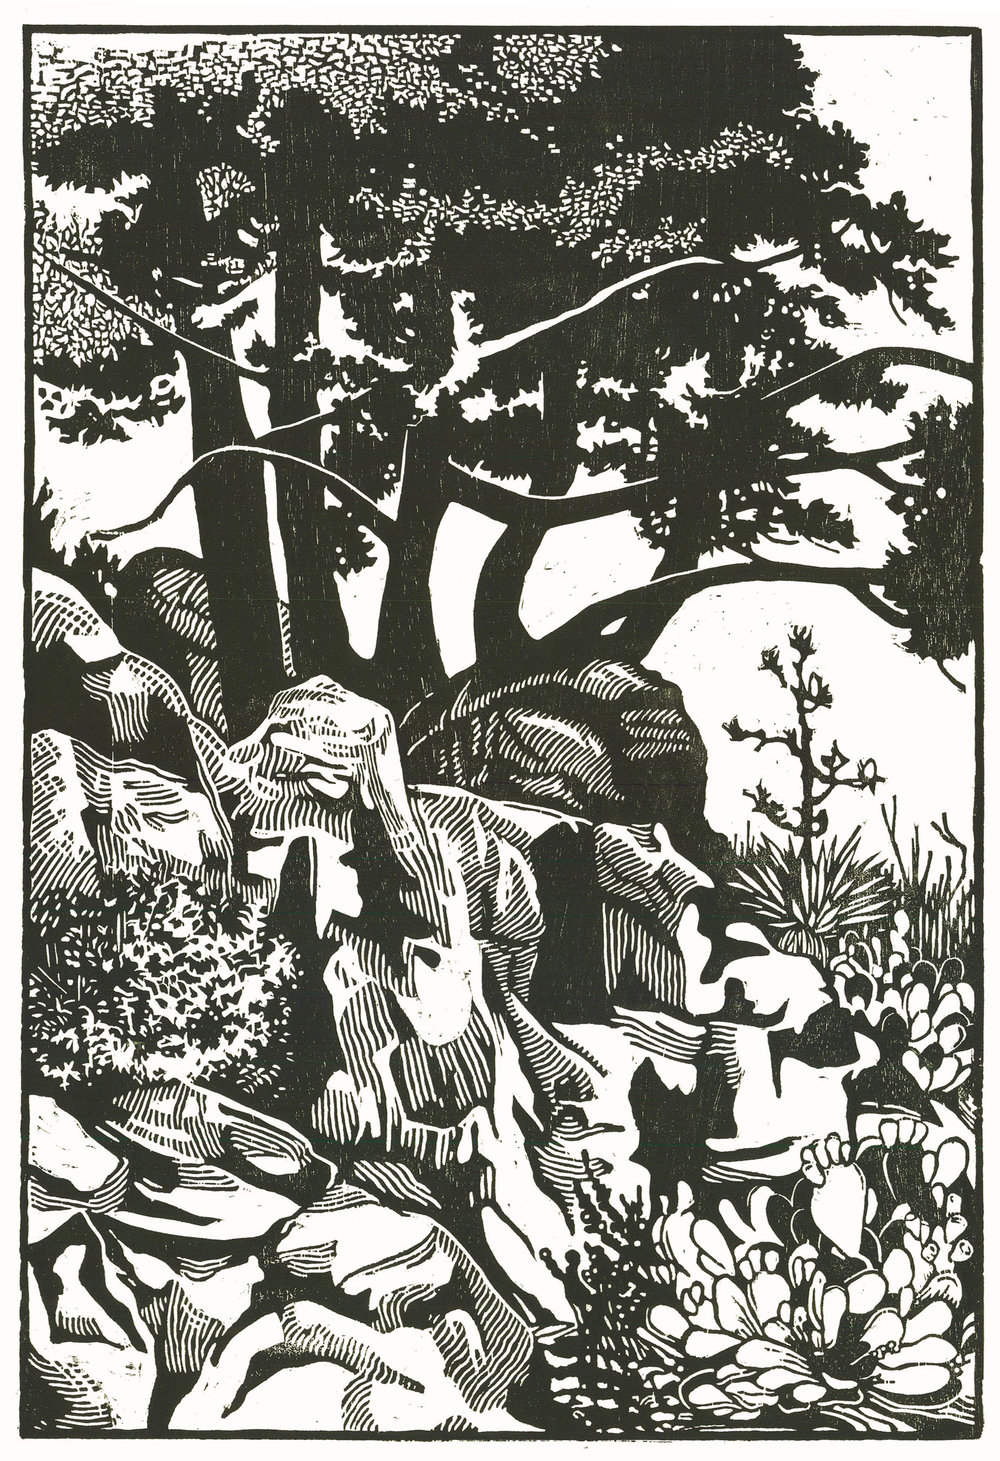 Max-Karl Winkler, Shaded Rocks / Courtesy BlackRock Center for the Arts